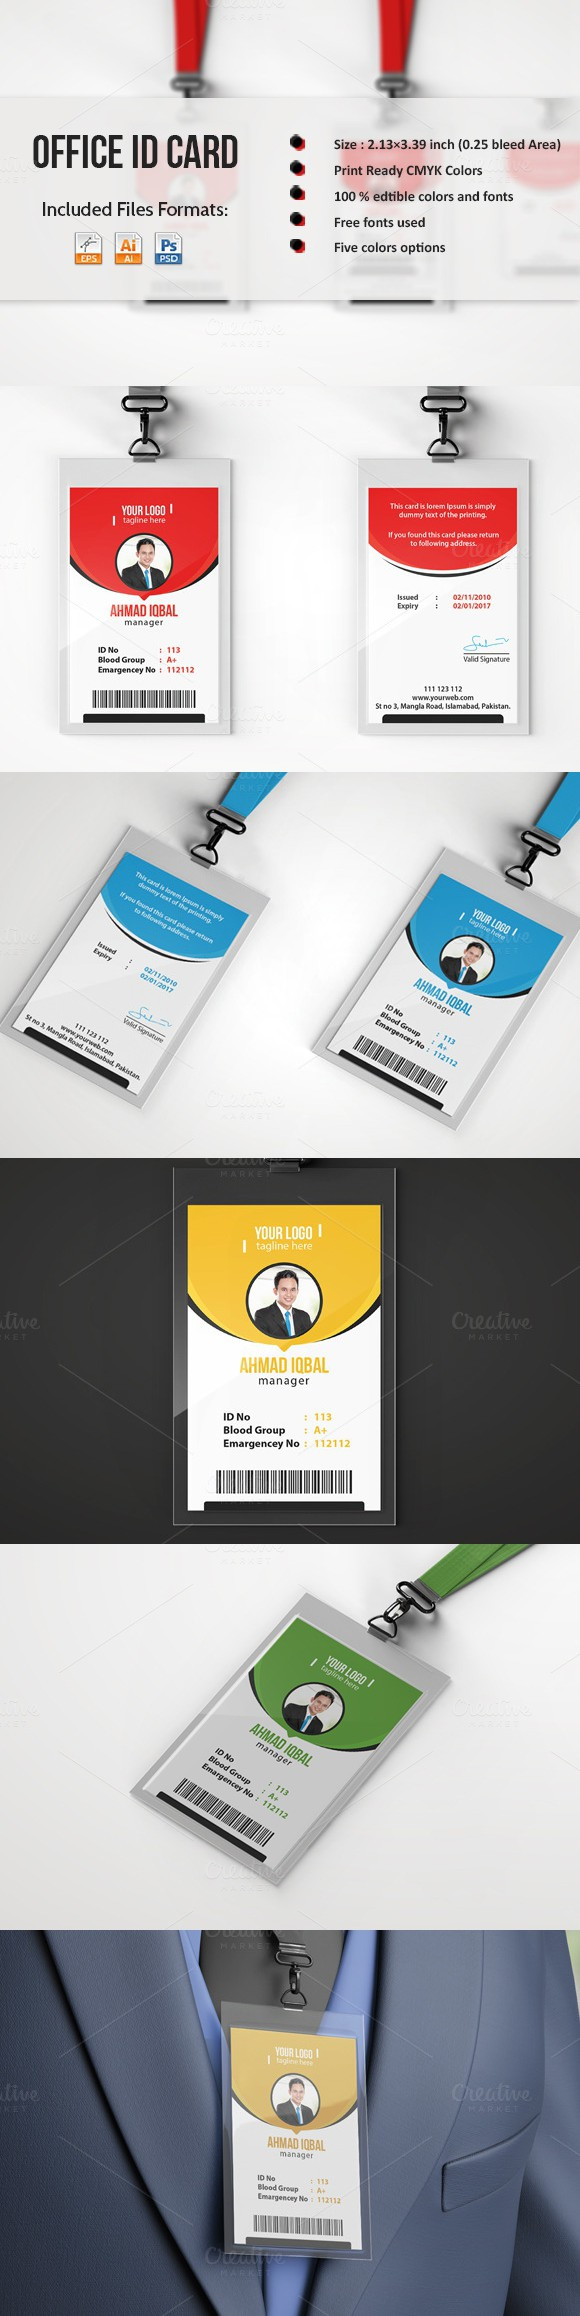 Office ID Card Template | Card templates, Template and Logos